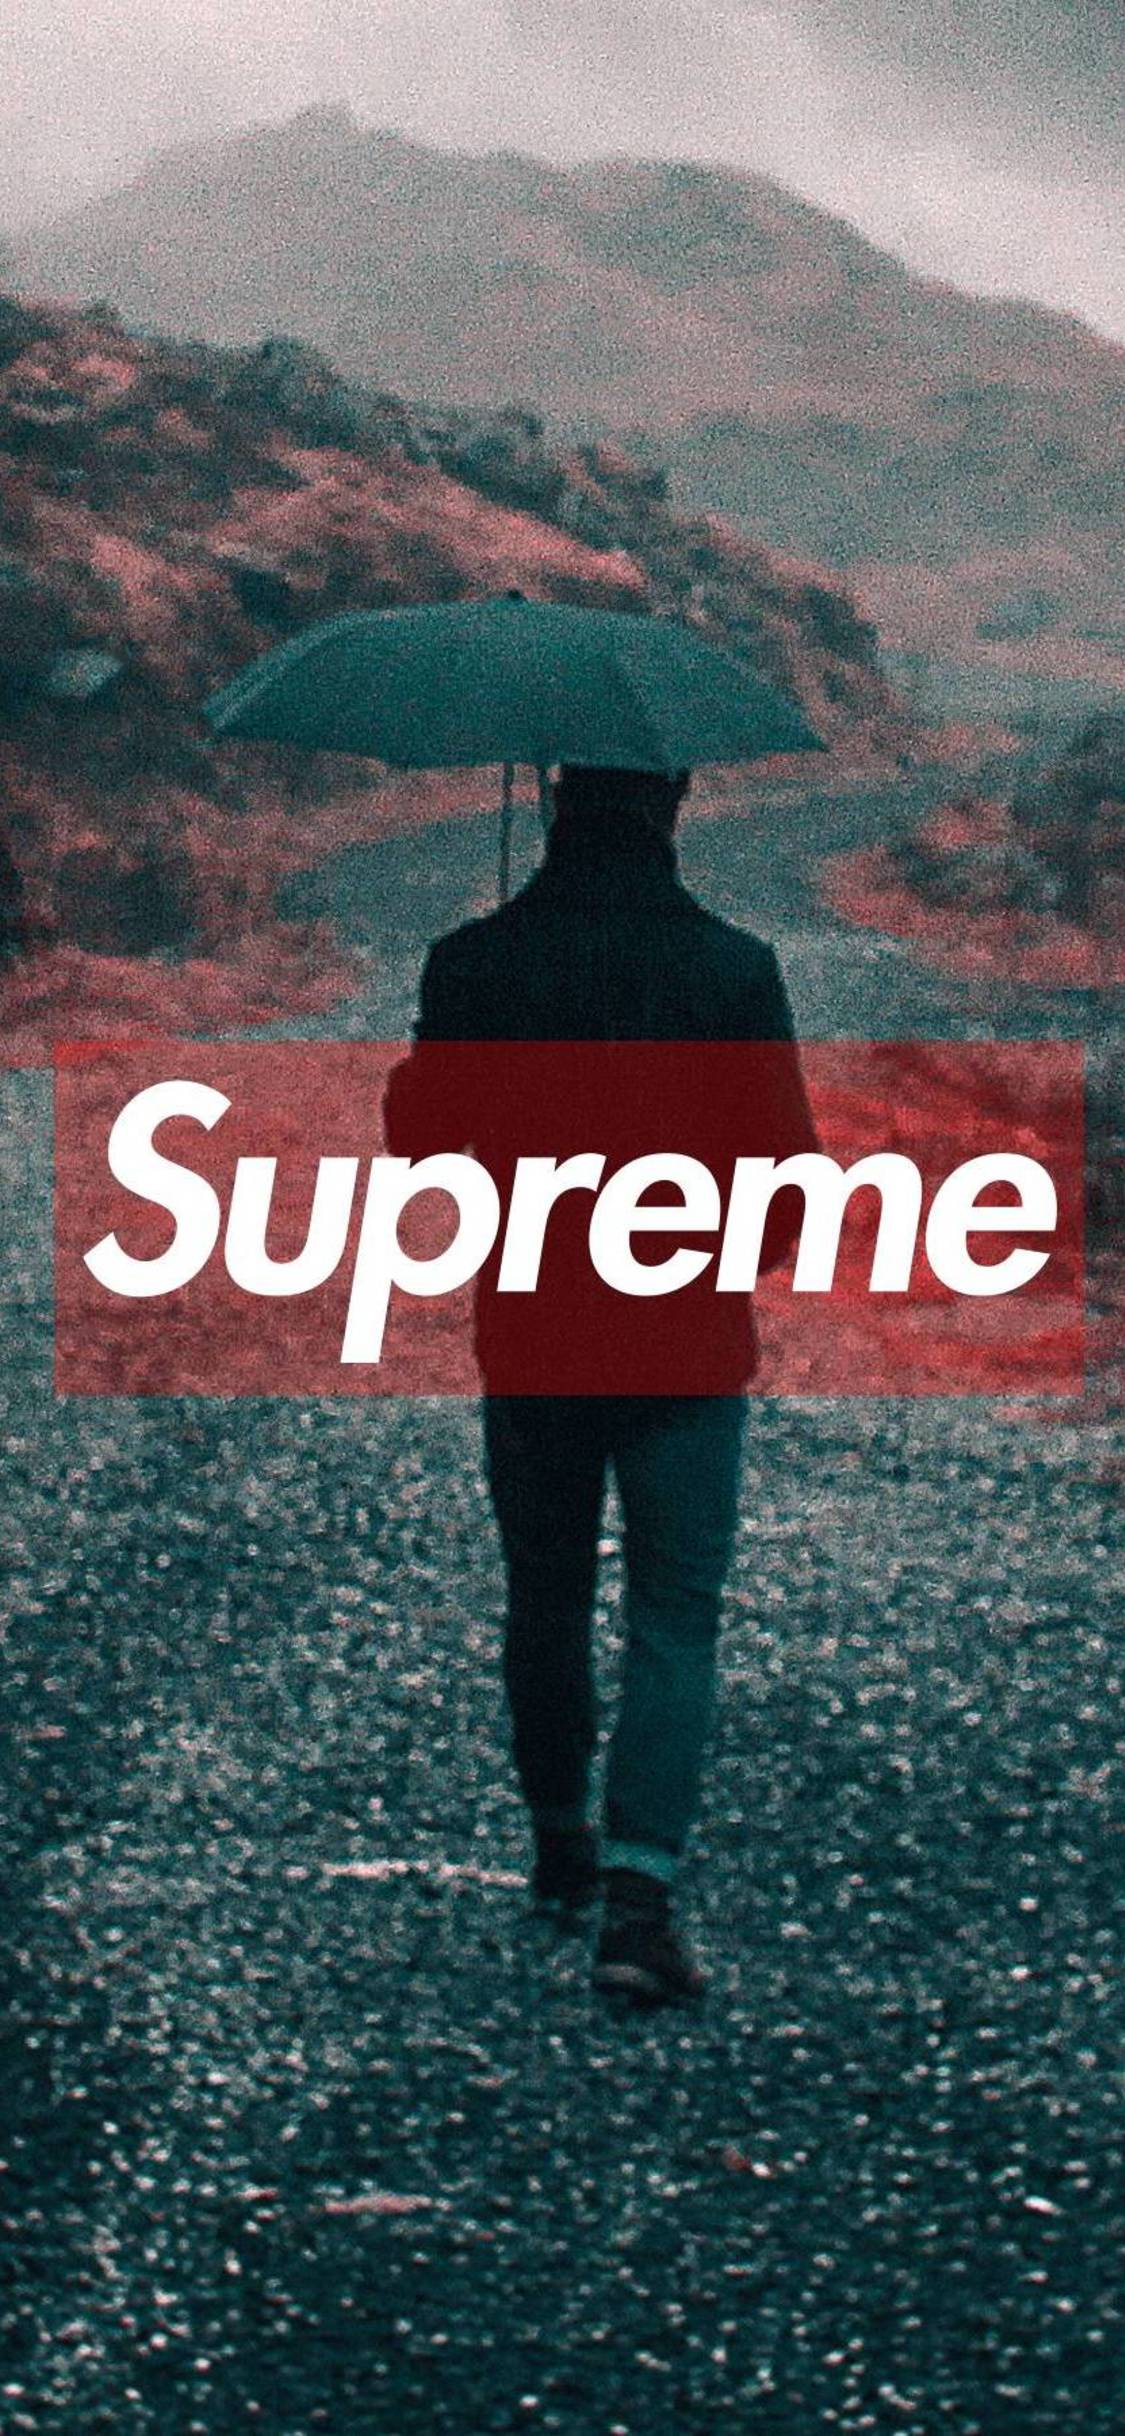 Supreme iPhone X Wallpapers   Top Supreme iPhone X 1125x2436